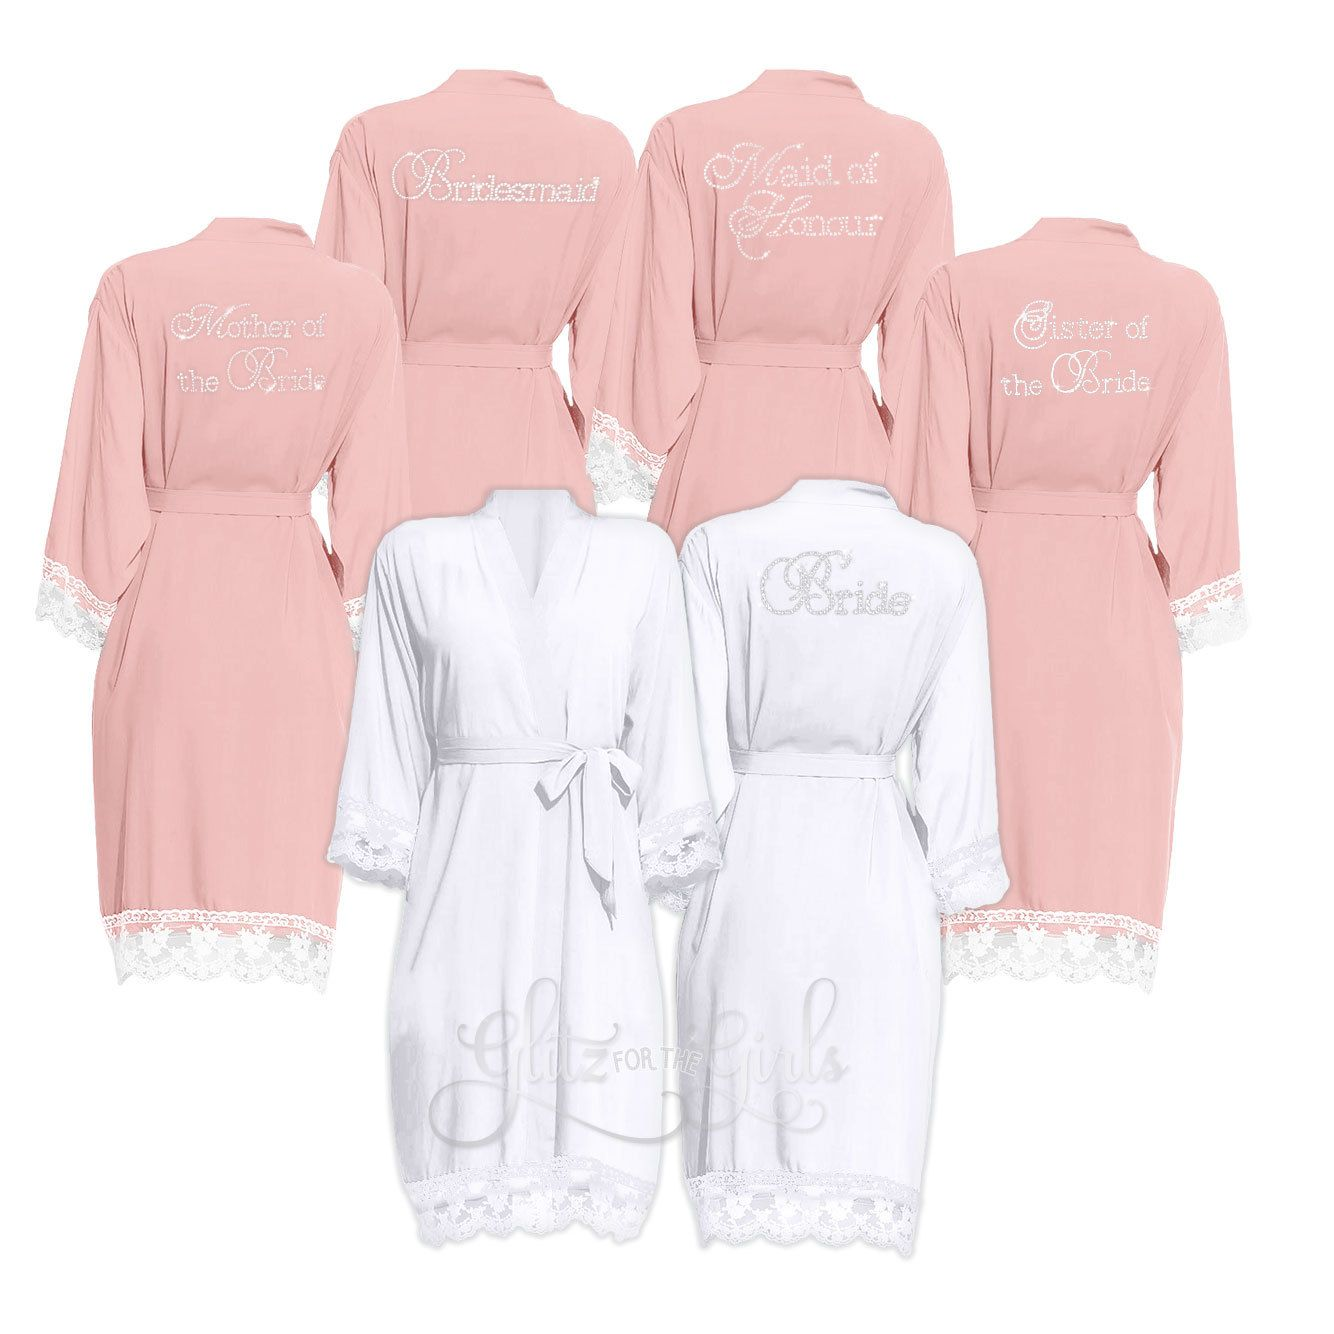 10 Discount Set Of 5 Lace Bridal Party Robes Brides Robe Wedding Robe Wedding Dressing Gown Bridesmaid Rob Bridal Party Robes Bridal Lace Bridesmaid Robes